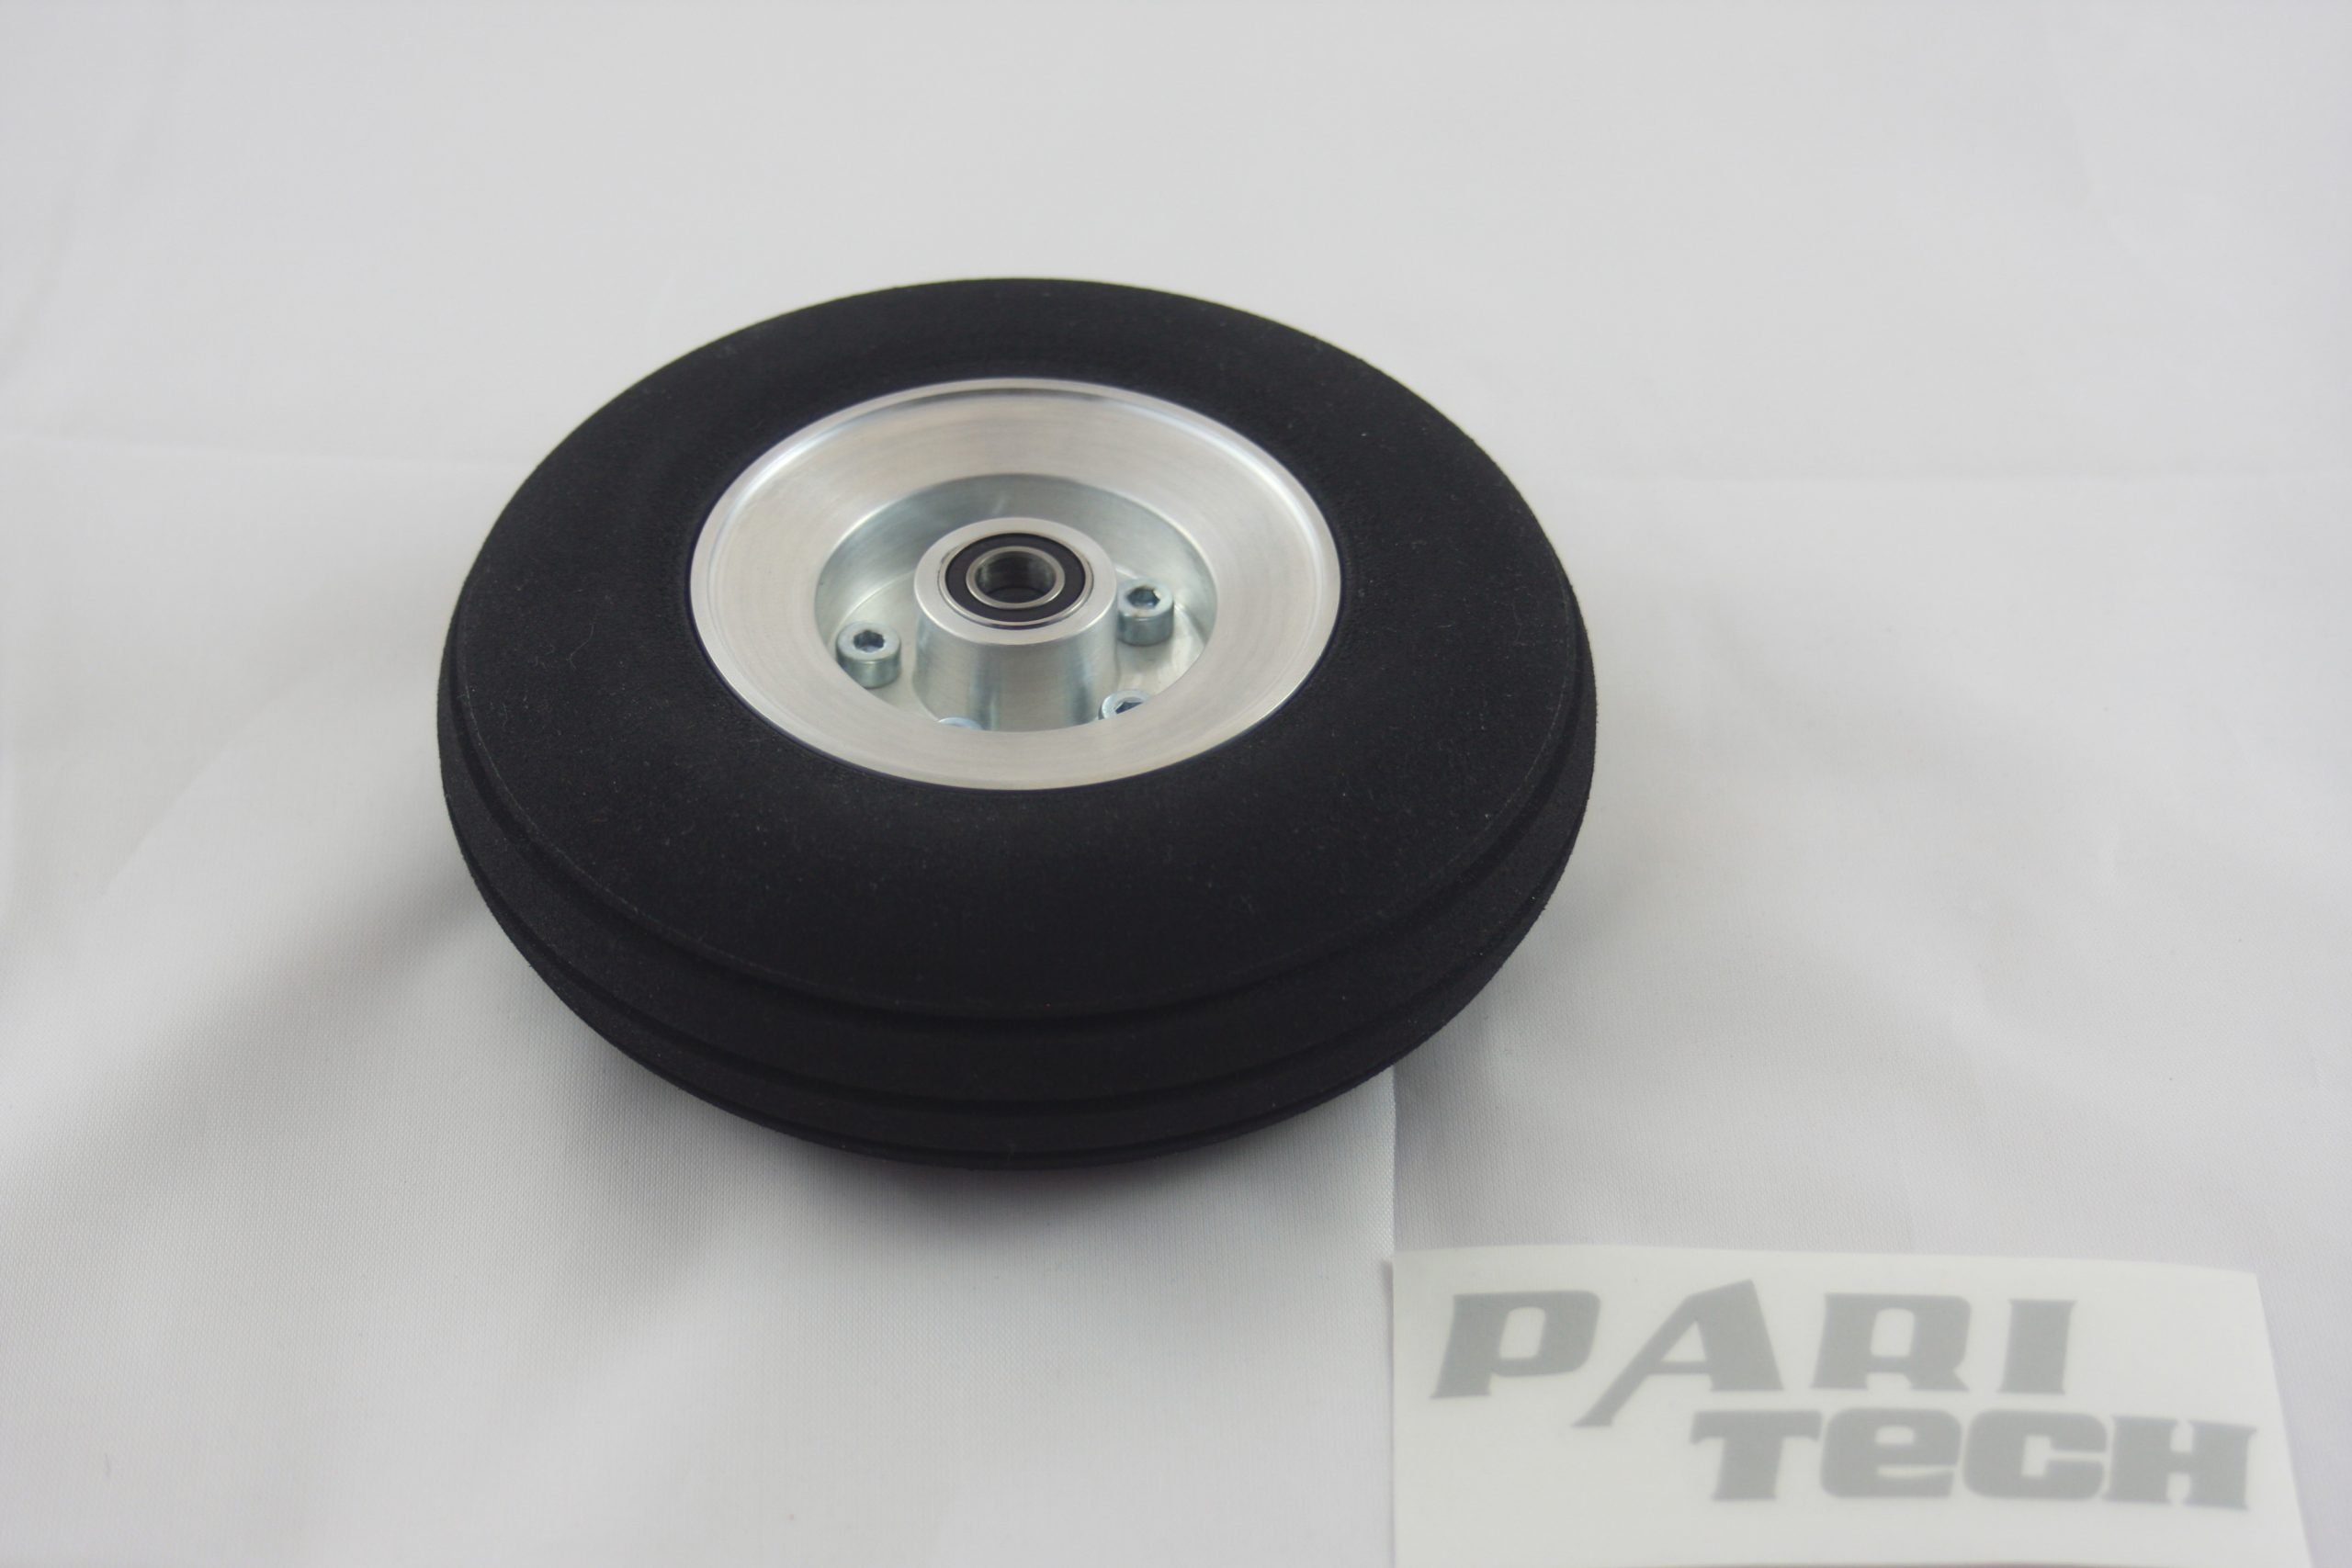 120 mm wheel with rim made of aluminium